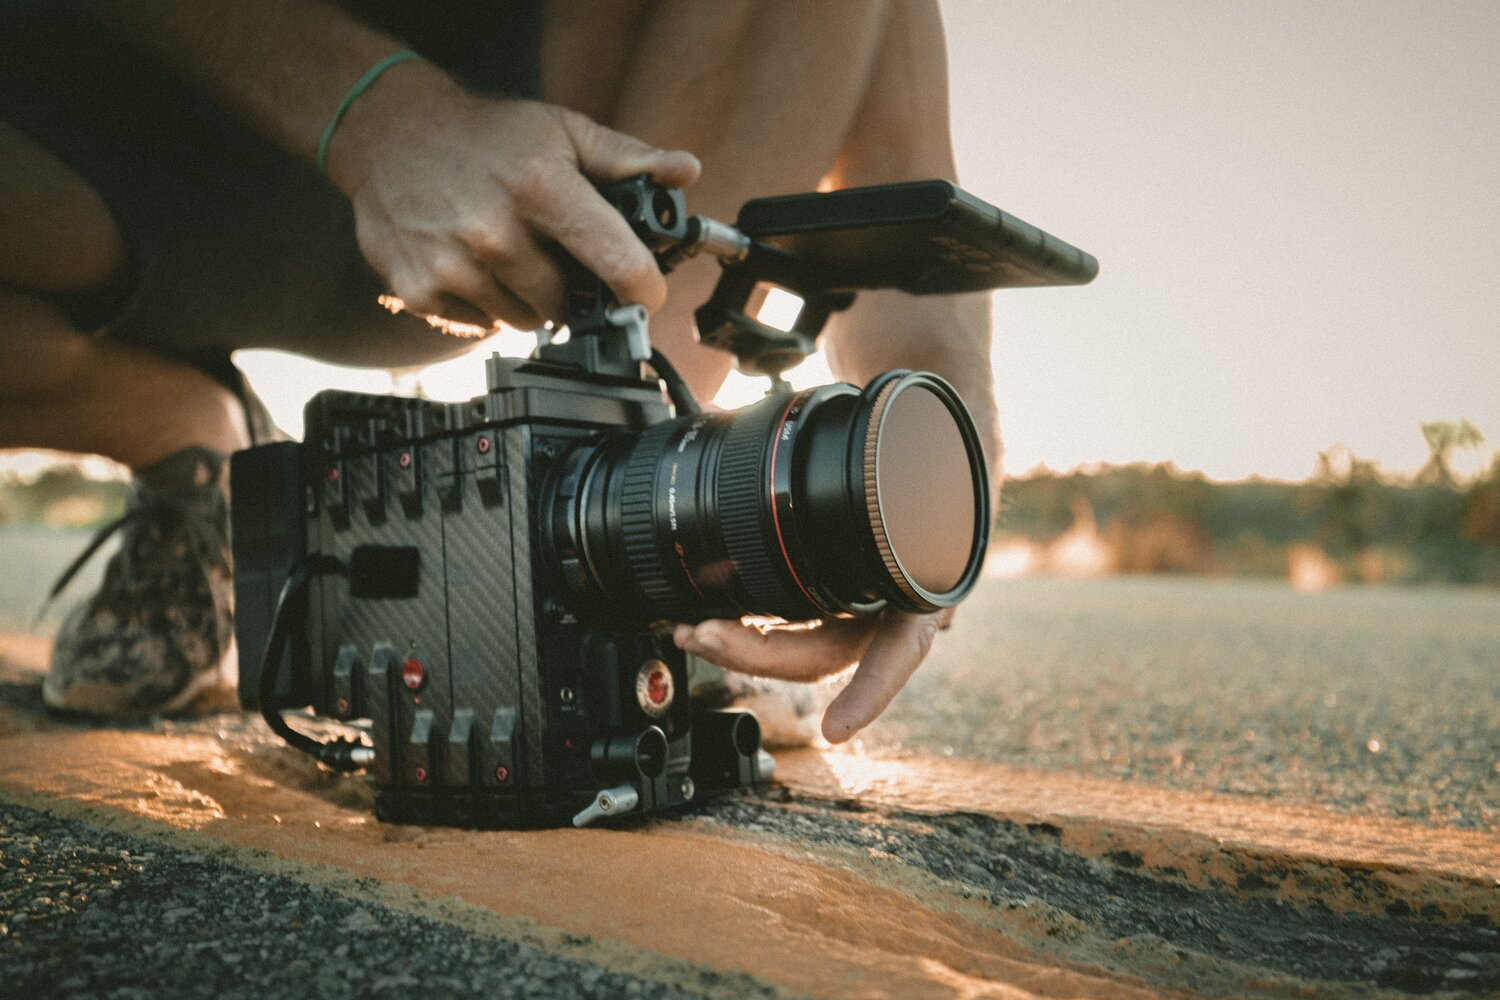 GUEST COLUMN: Want To Be a Movie Producer or Videographer? Here's What You Need To Know